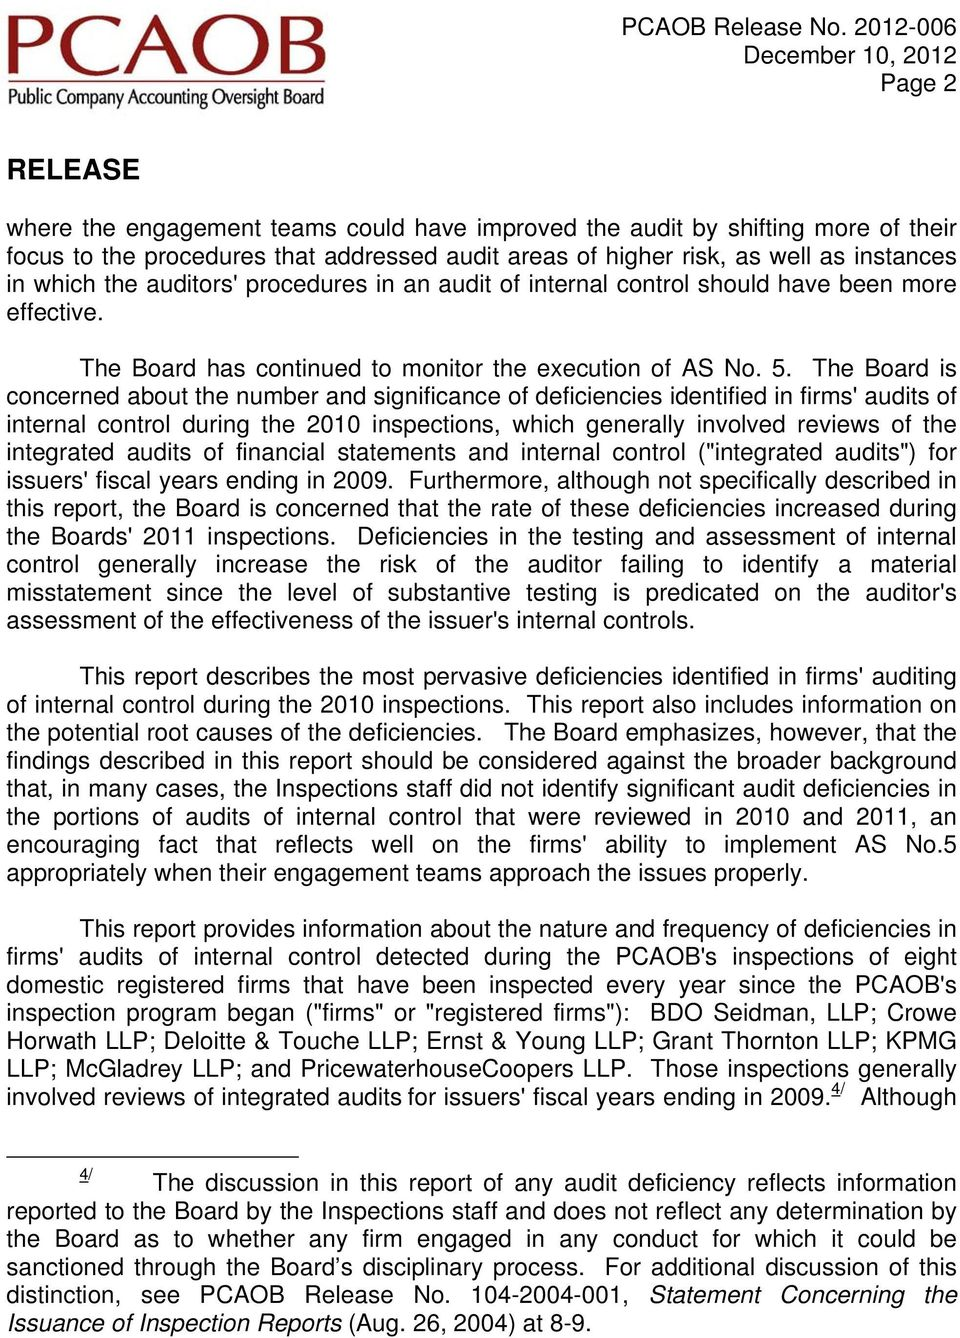 The Board is concerned about the number and significance of deficiencies identified in firms' audits of internal control during the 2010 inspections, which generally involved reviews of the